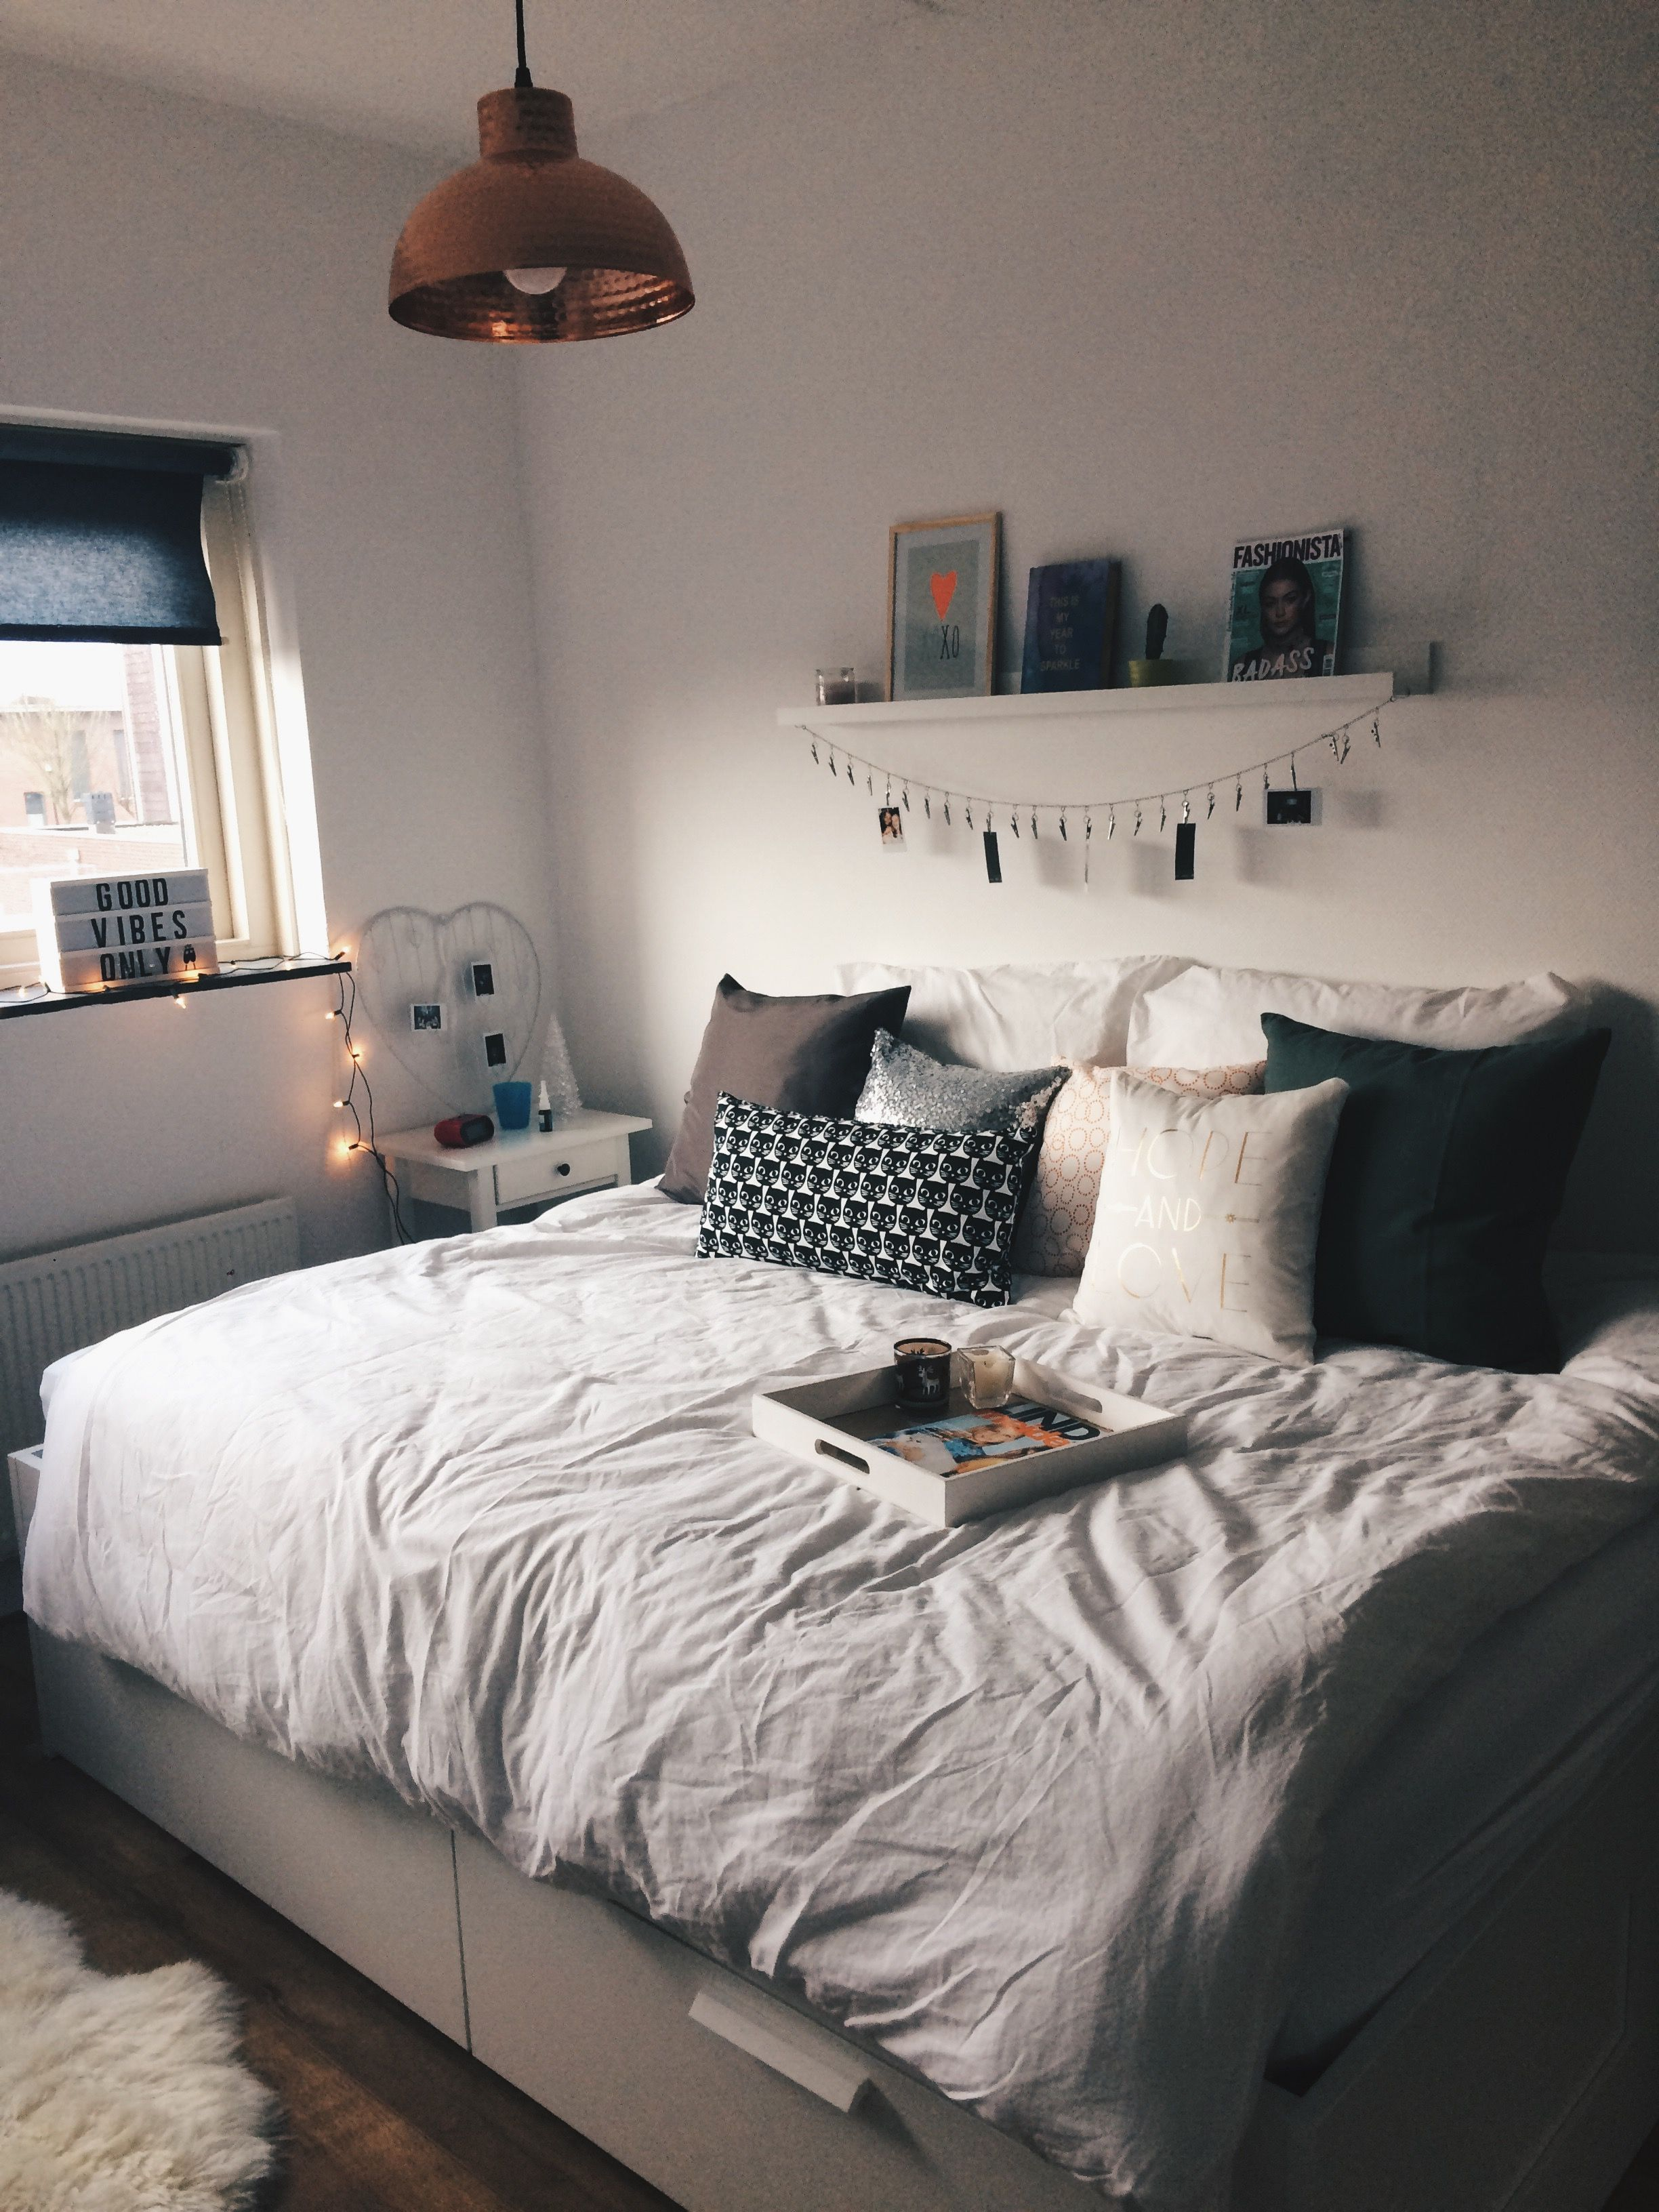 Design Your Own Dorm Room: See How To Give The Rooms In Your Home A Boost With DIY